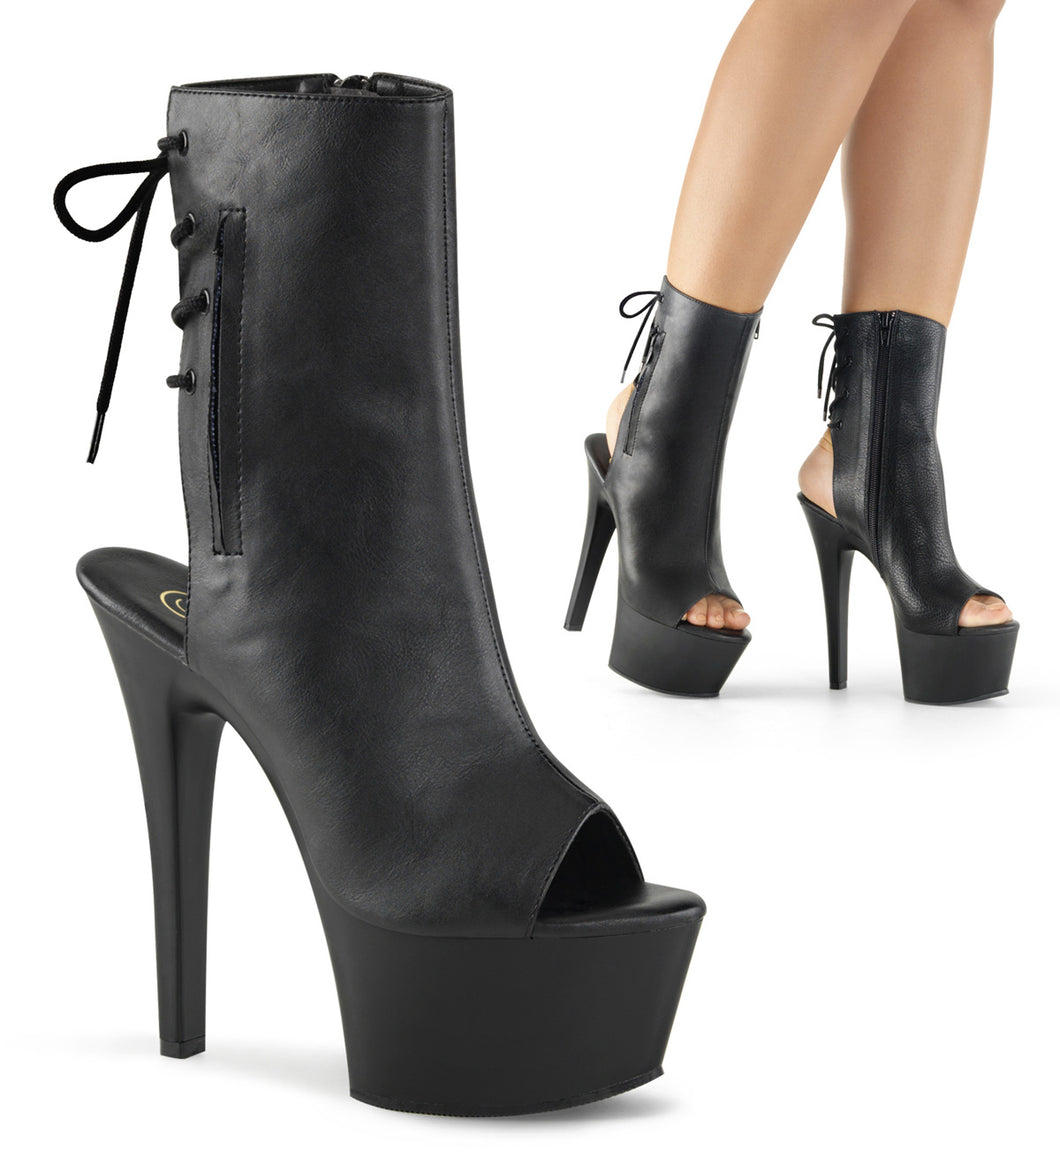 Pleaser Aspire-1018 Open Toe Platform Ankle Boot With Pocket Smooth Veggie Leather WIDE WIDTH